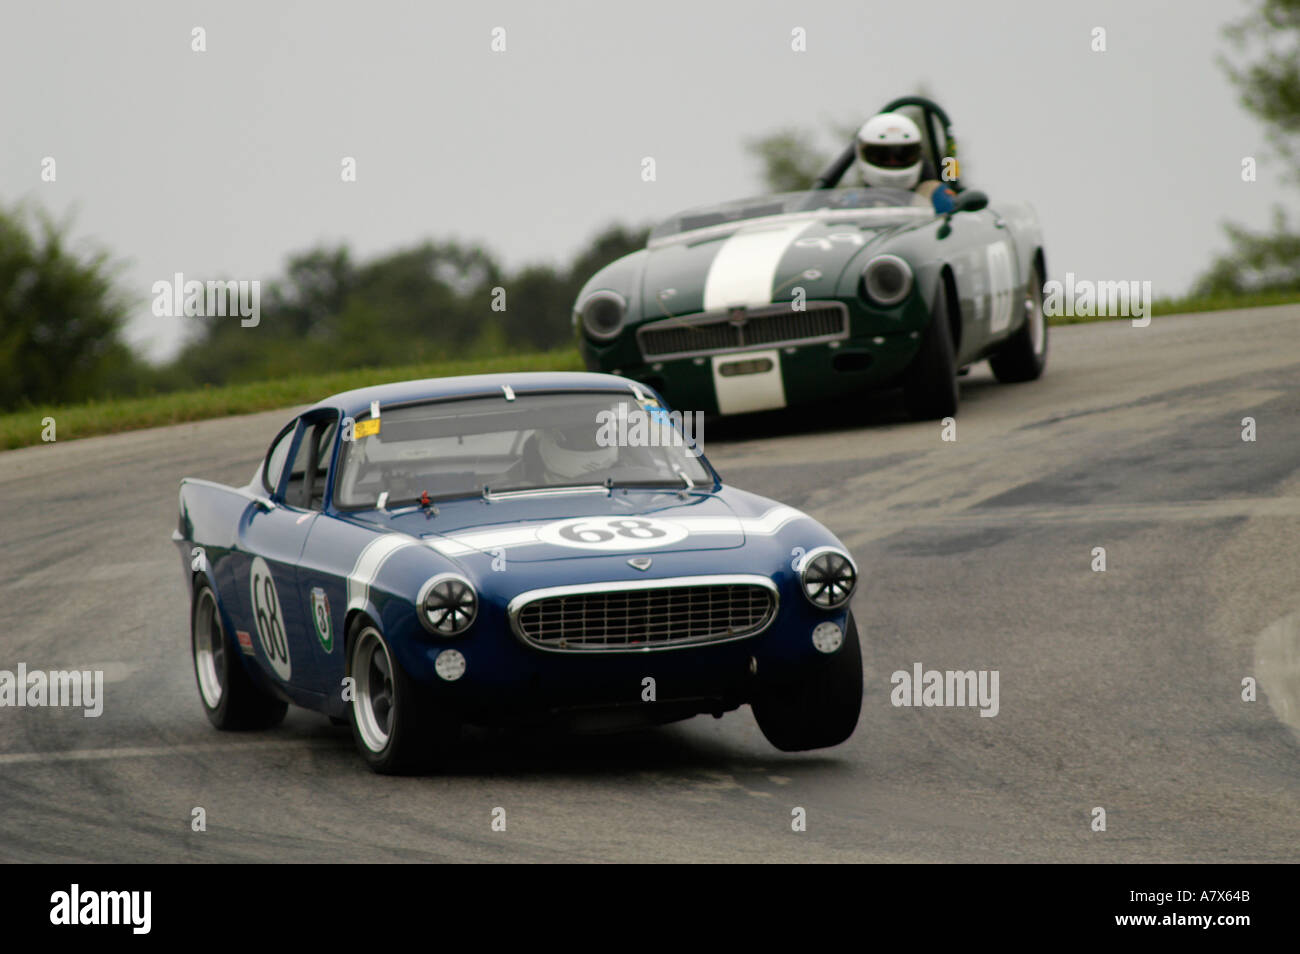 Richard conklin in his 1968 volvo p1800 followed by donald dickey in his 1963 mgb at